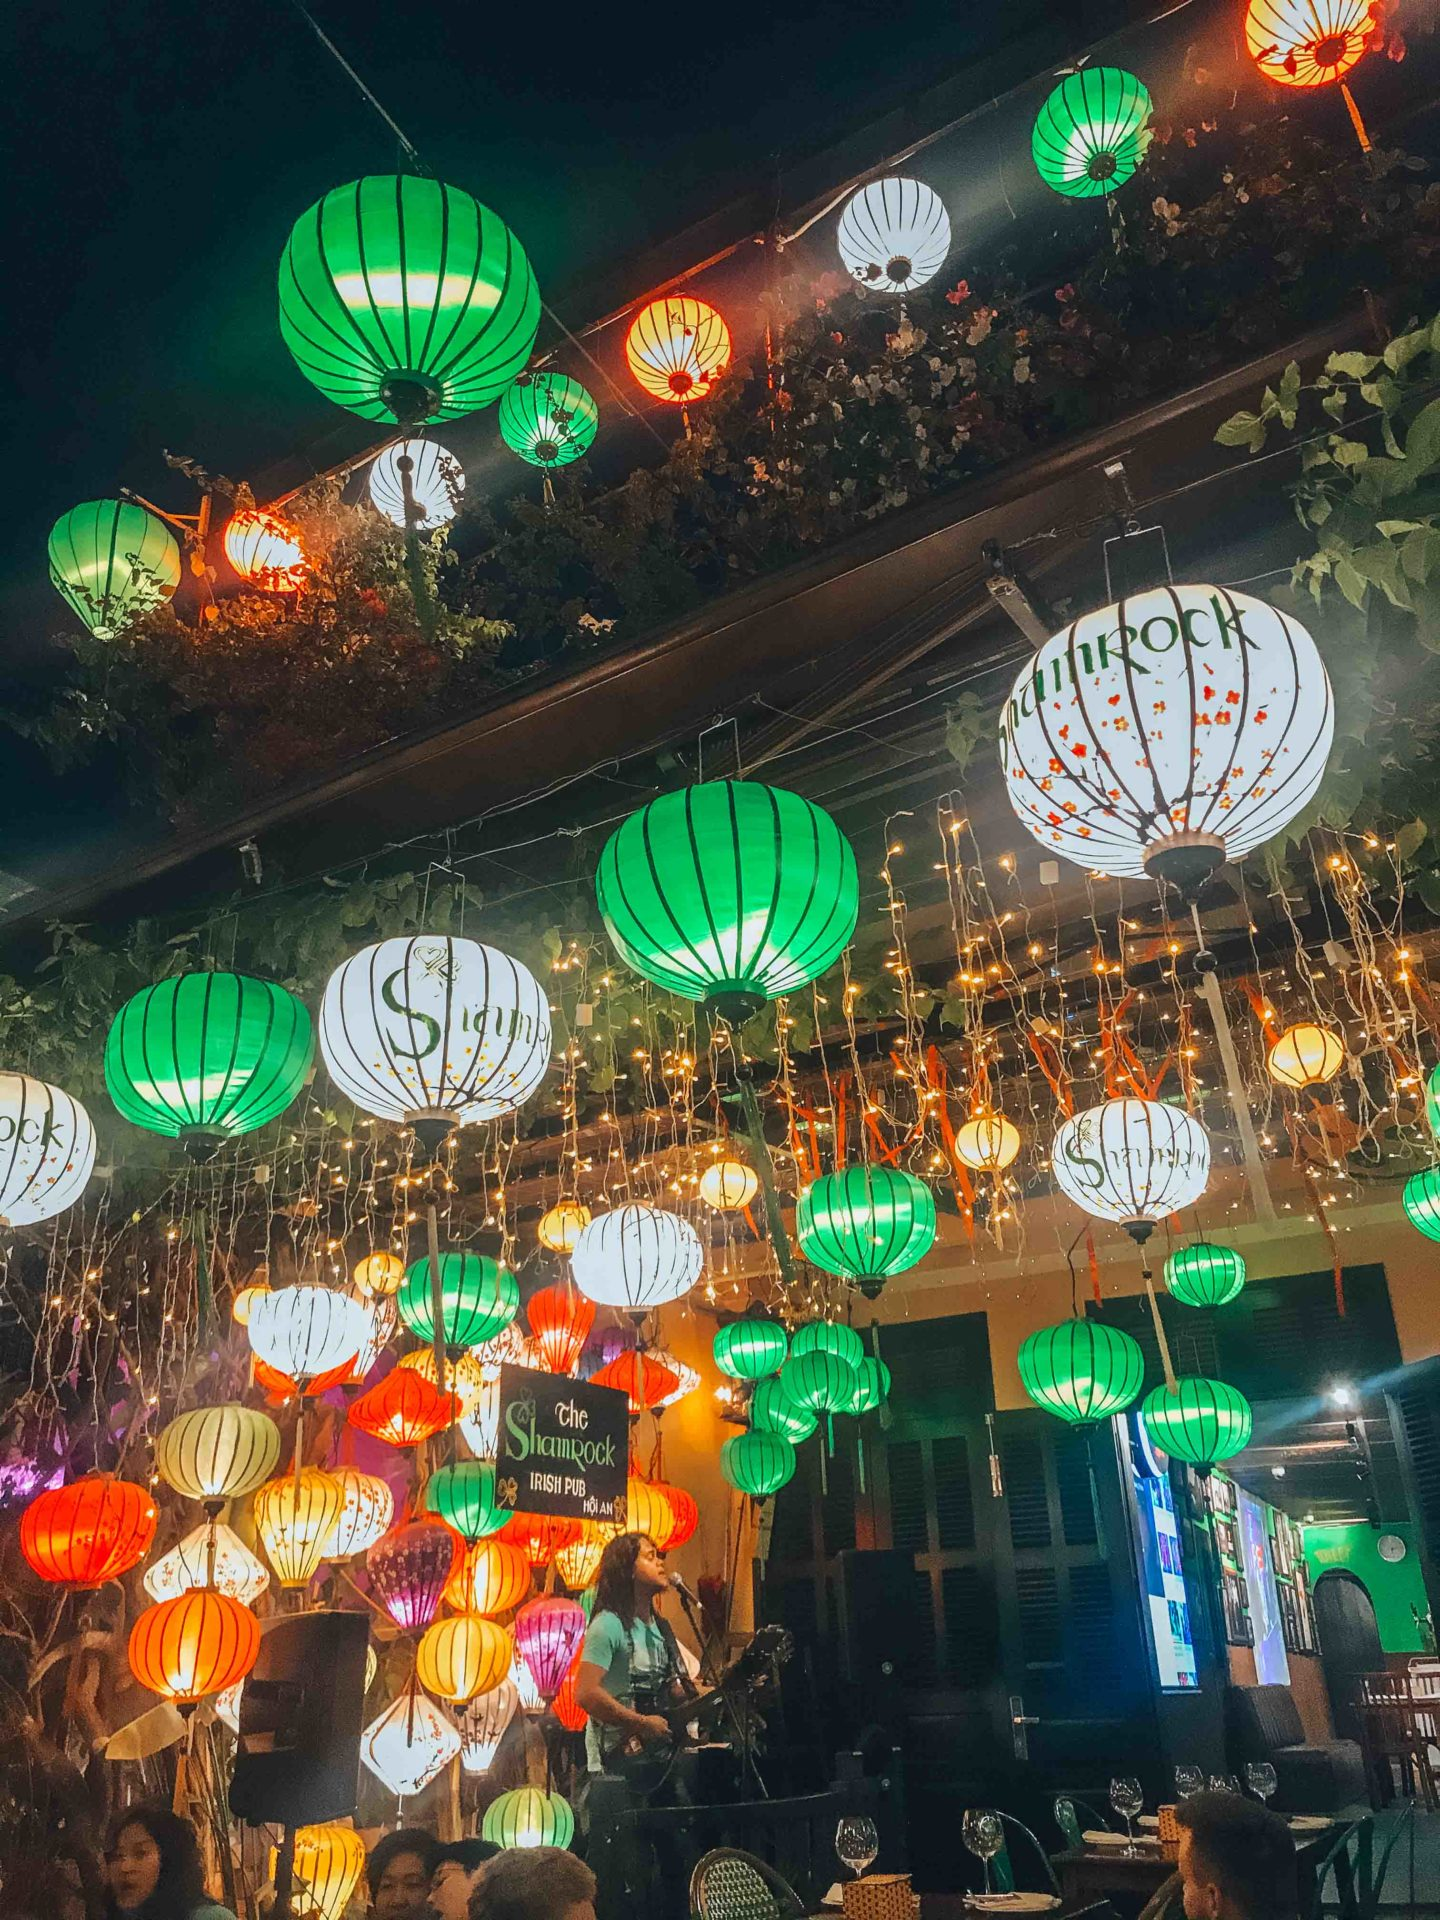 Where to eat dinner in Hoi An, lanters decoration and live music pub